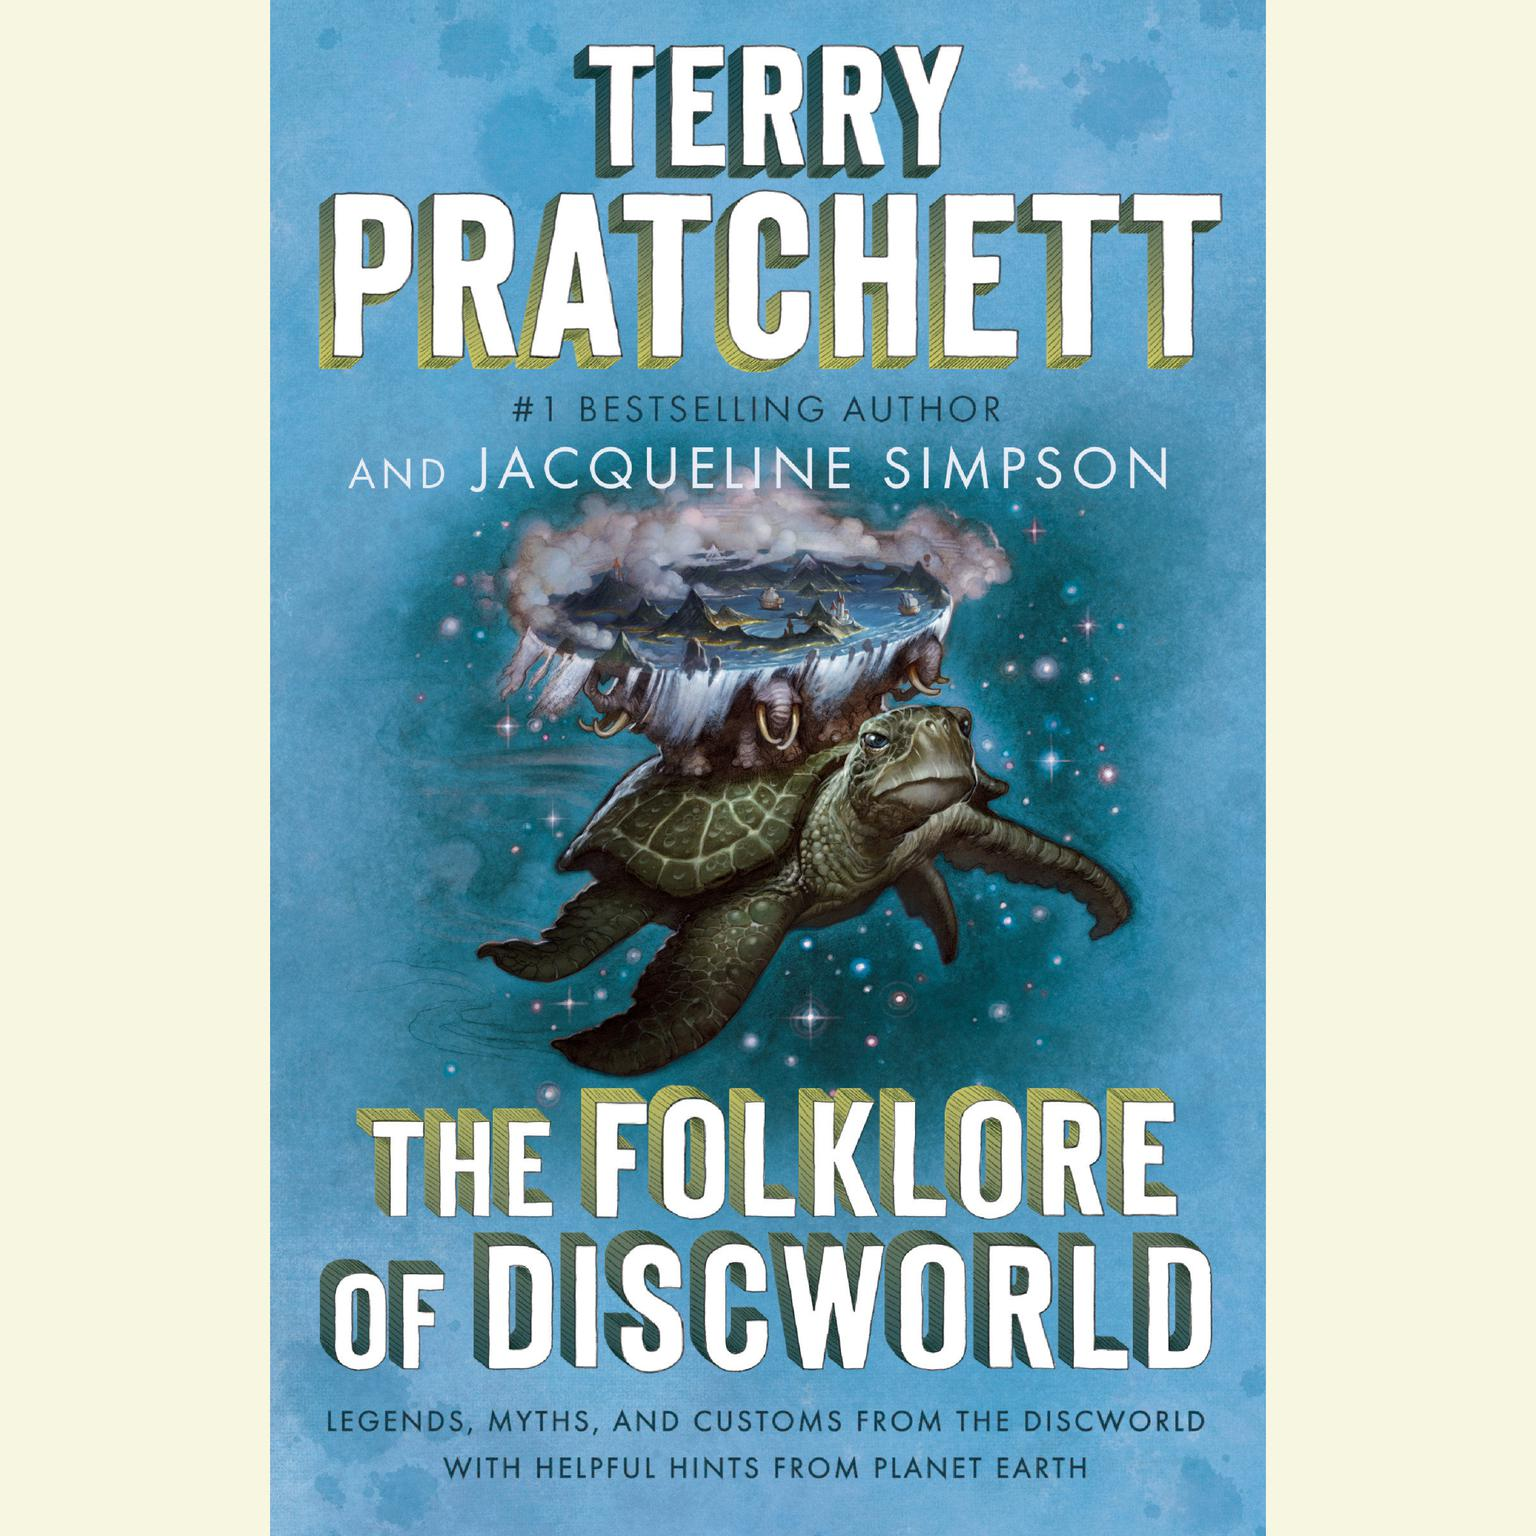 Printable The Folklore of Discworld: Legends, Myths, and Customs from the Discworld with Helpful Hints from Planet Earth Audiobook Cover Art